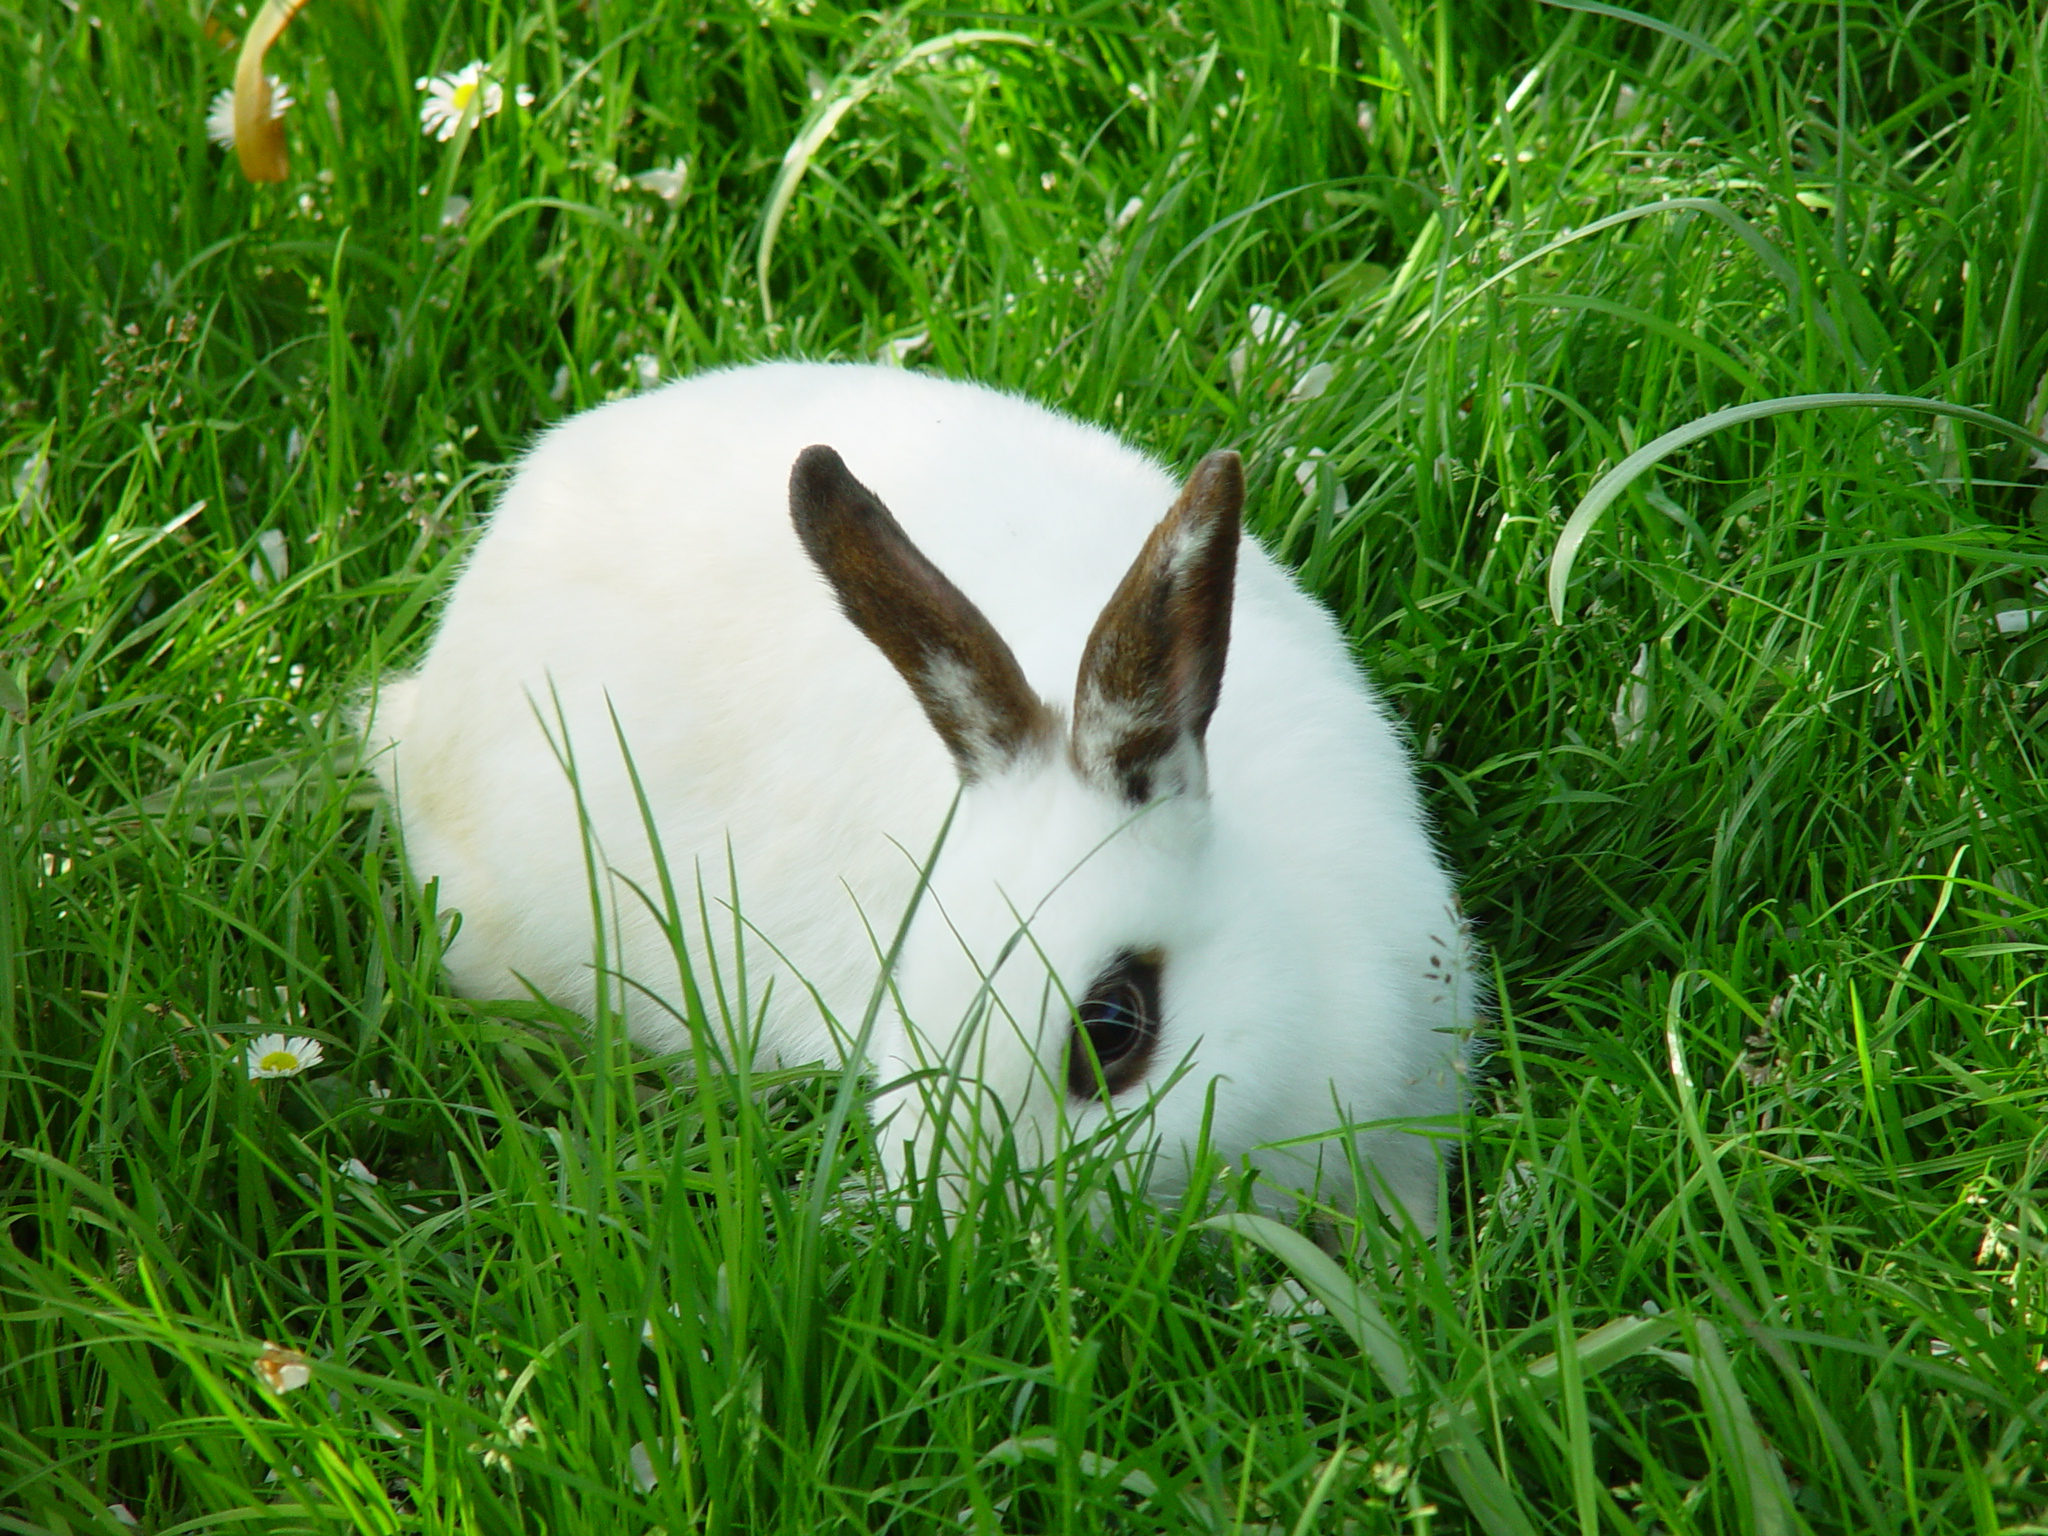 Adventurous Bunnies Explore the Lawn and Tall Grasses 3